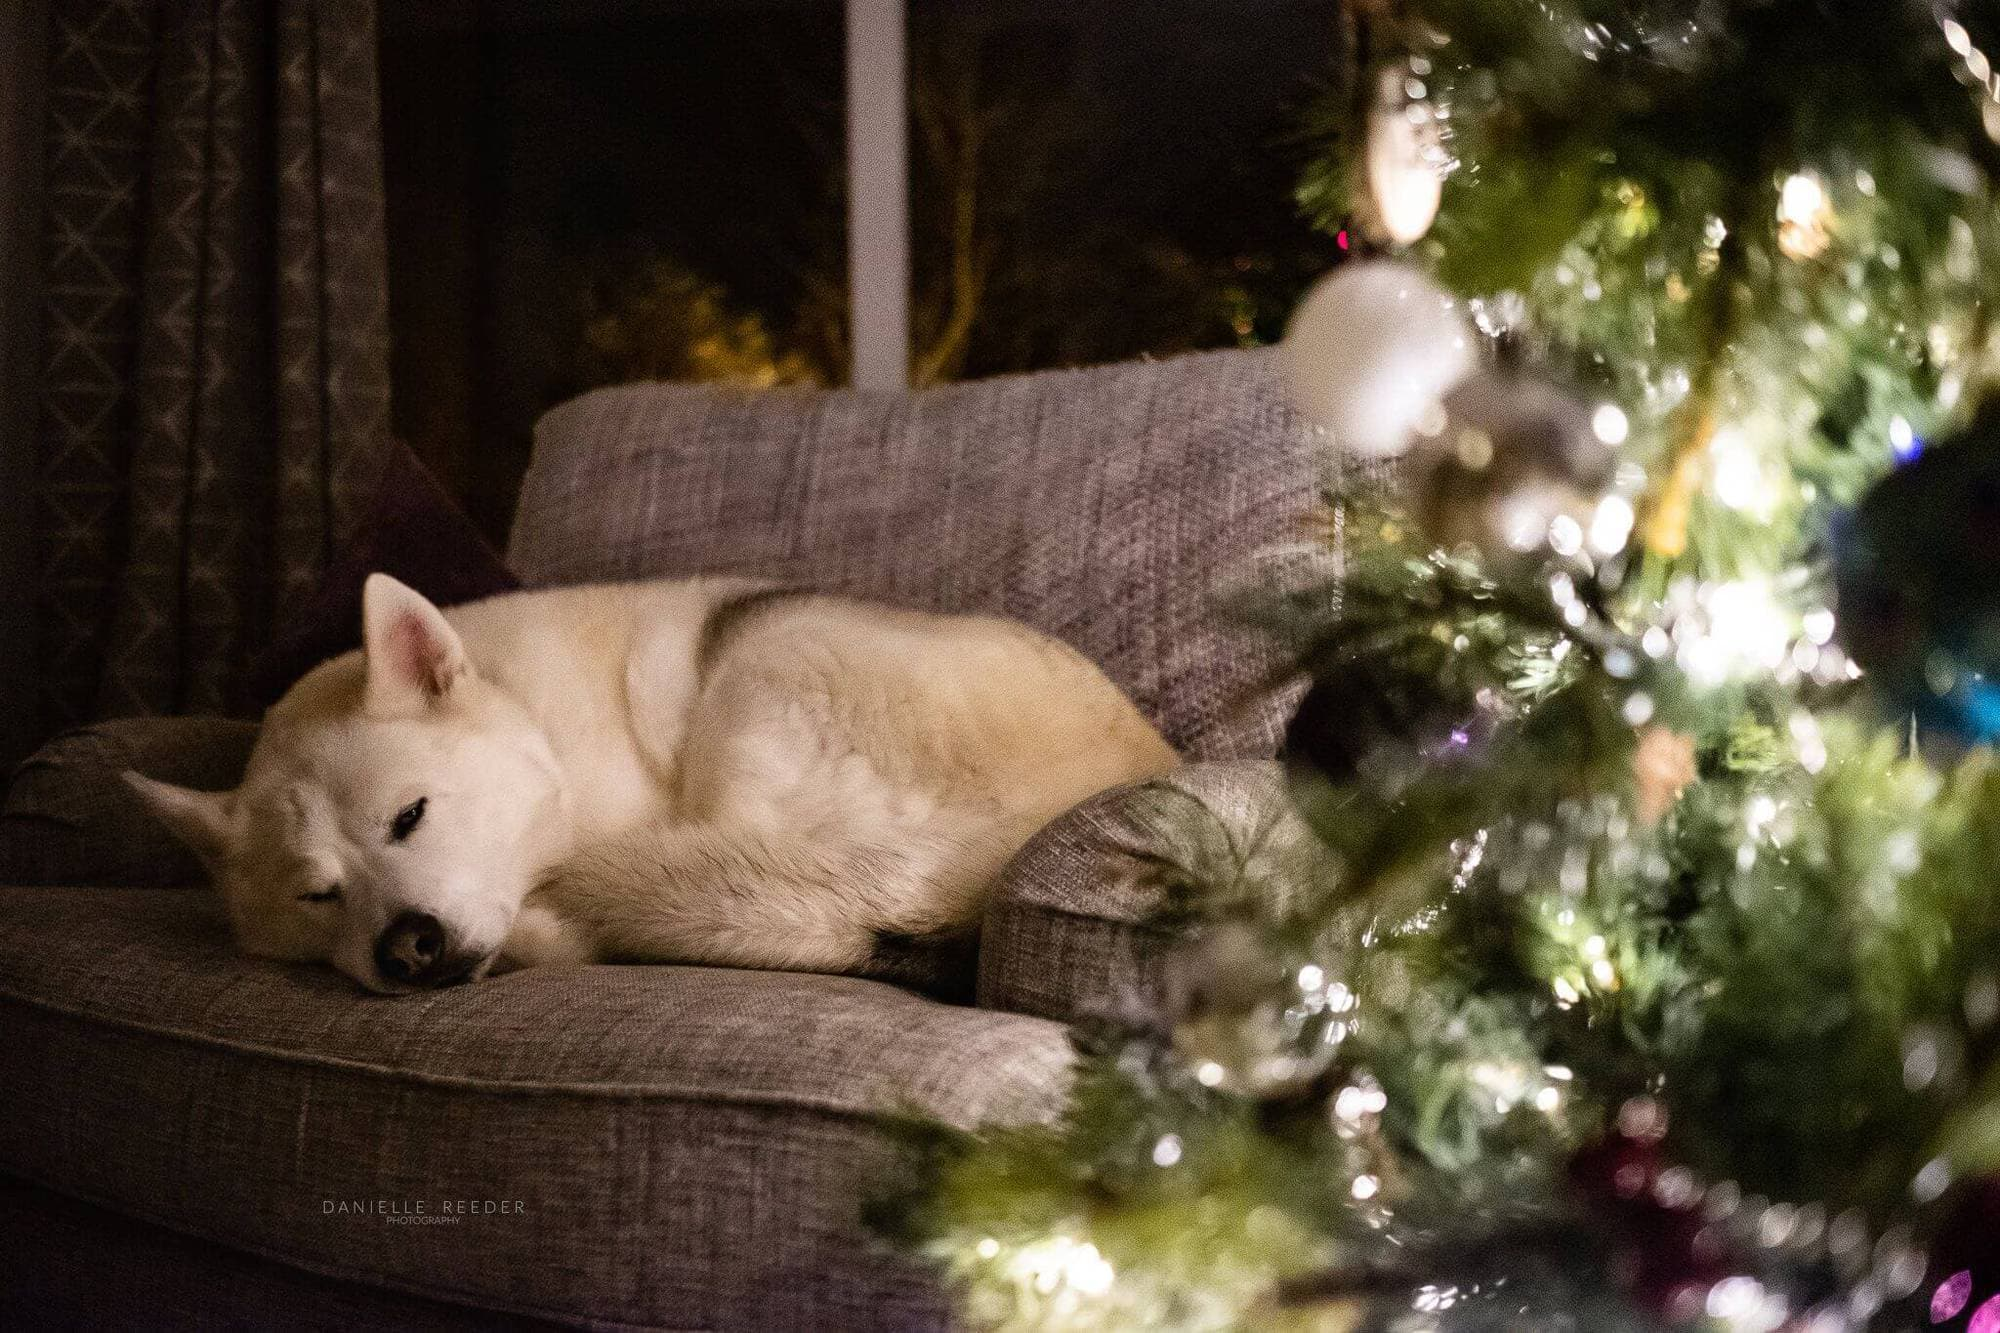 Top Tips For Photographing Around The Christmas Tree